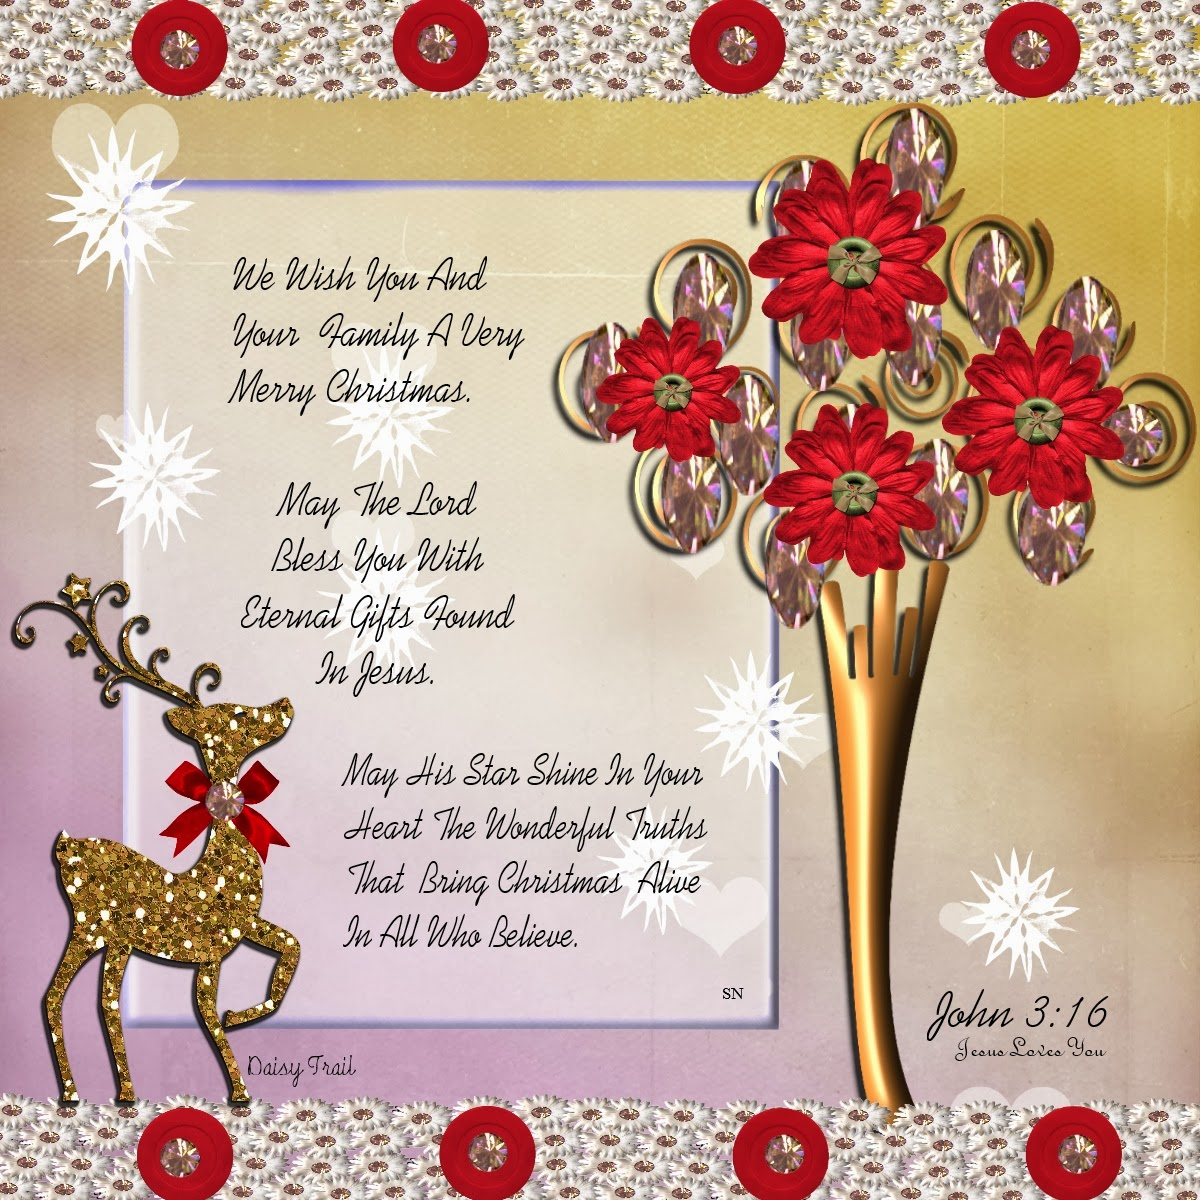 christian images in my treasure box christmas verses and